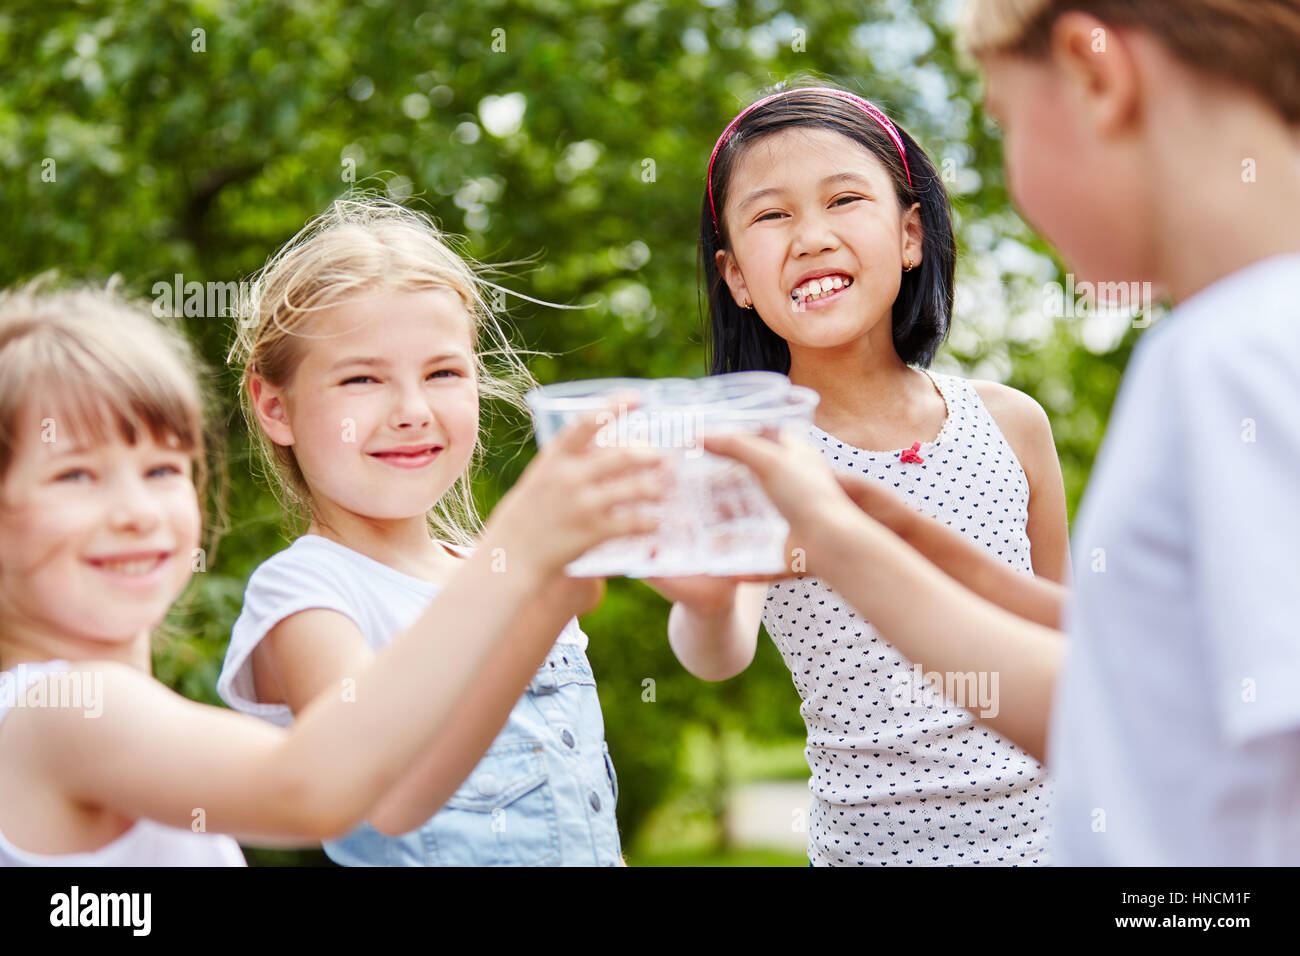 Three girls clinking their glasses of water at birthday party - Stock Image